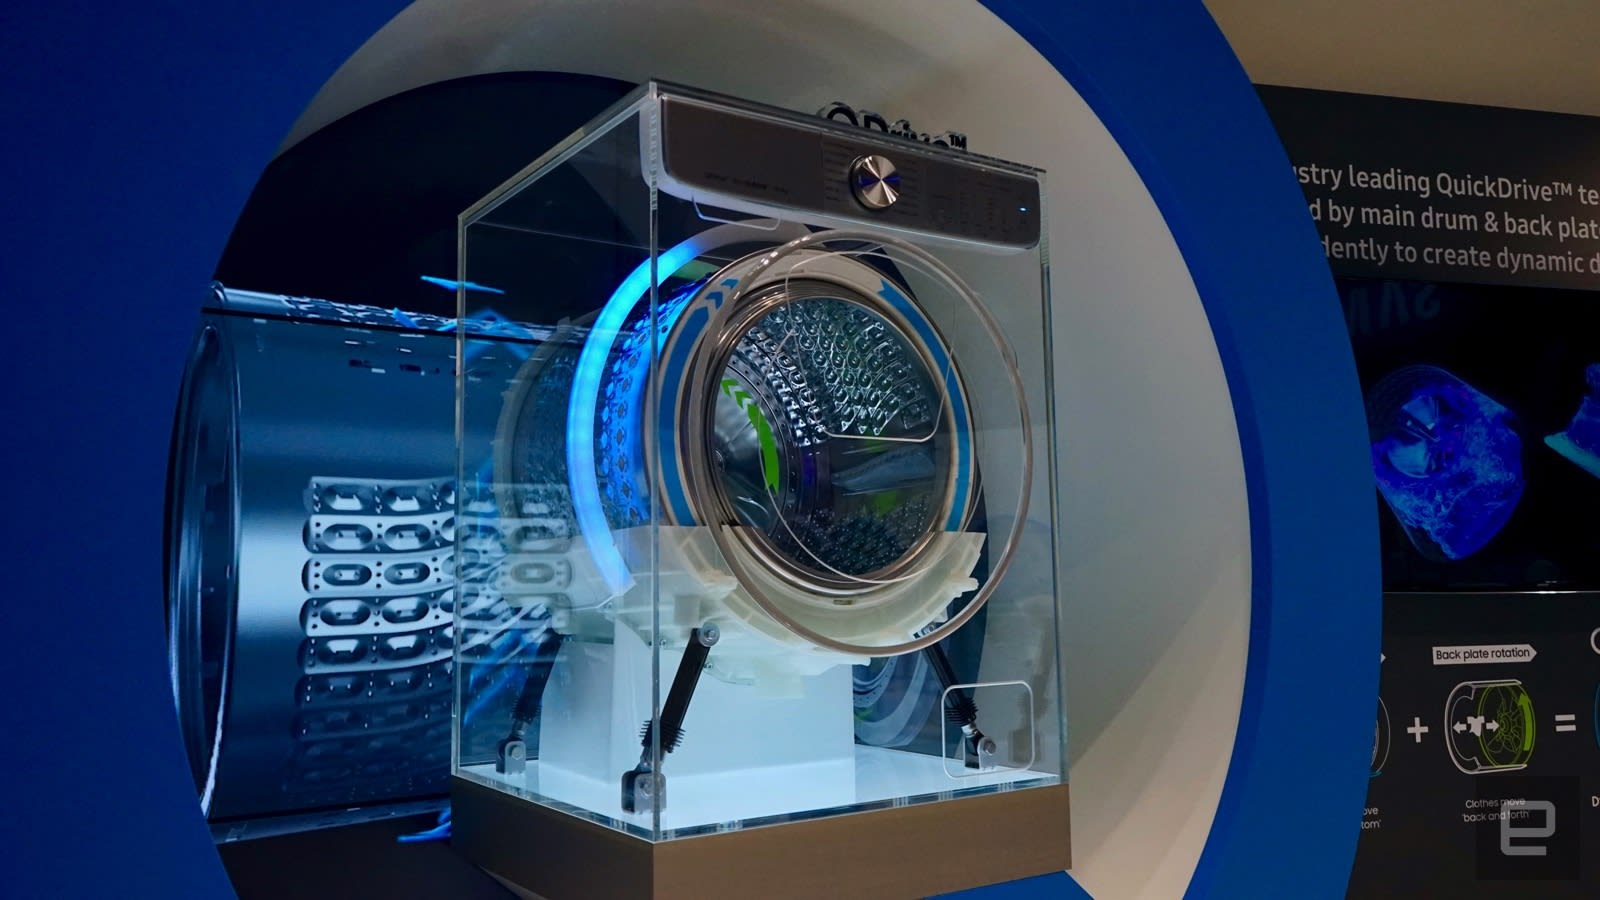 Samsung S Ai Powered Washer Is Just Trying To Save You Time